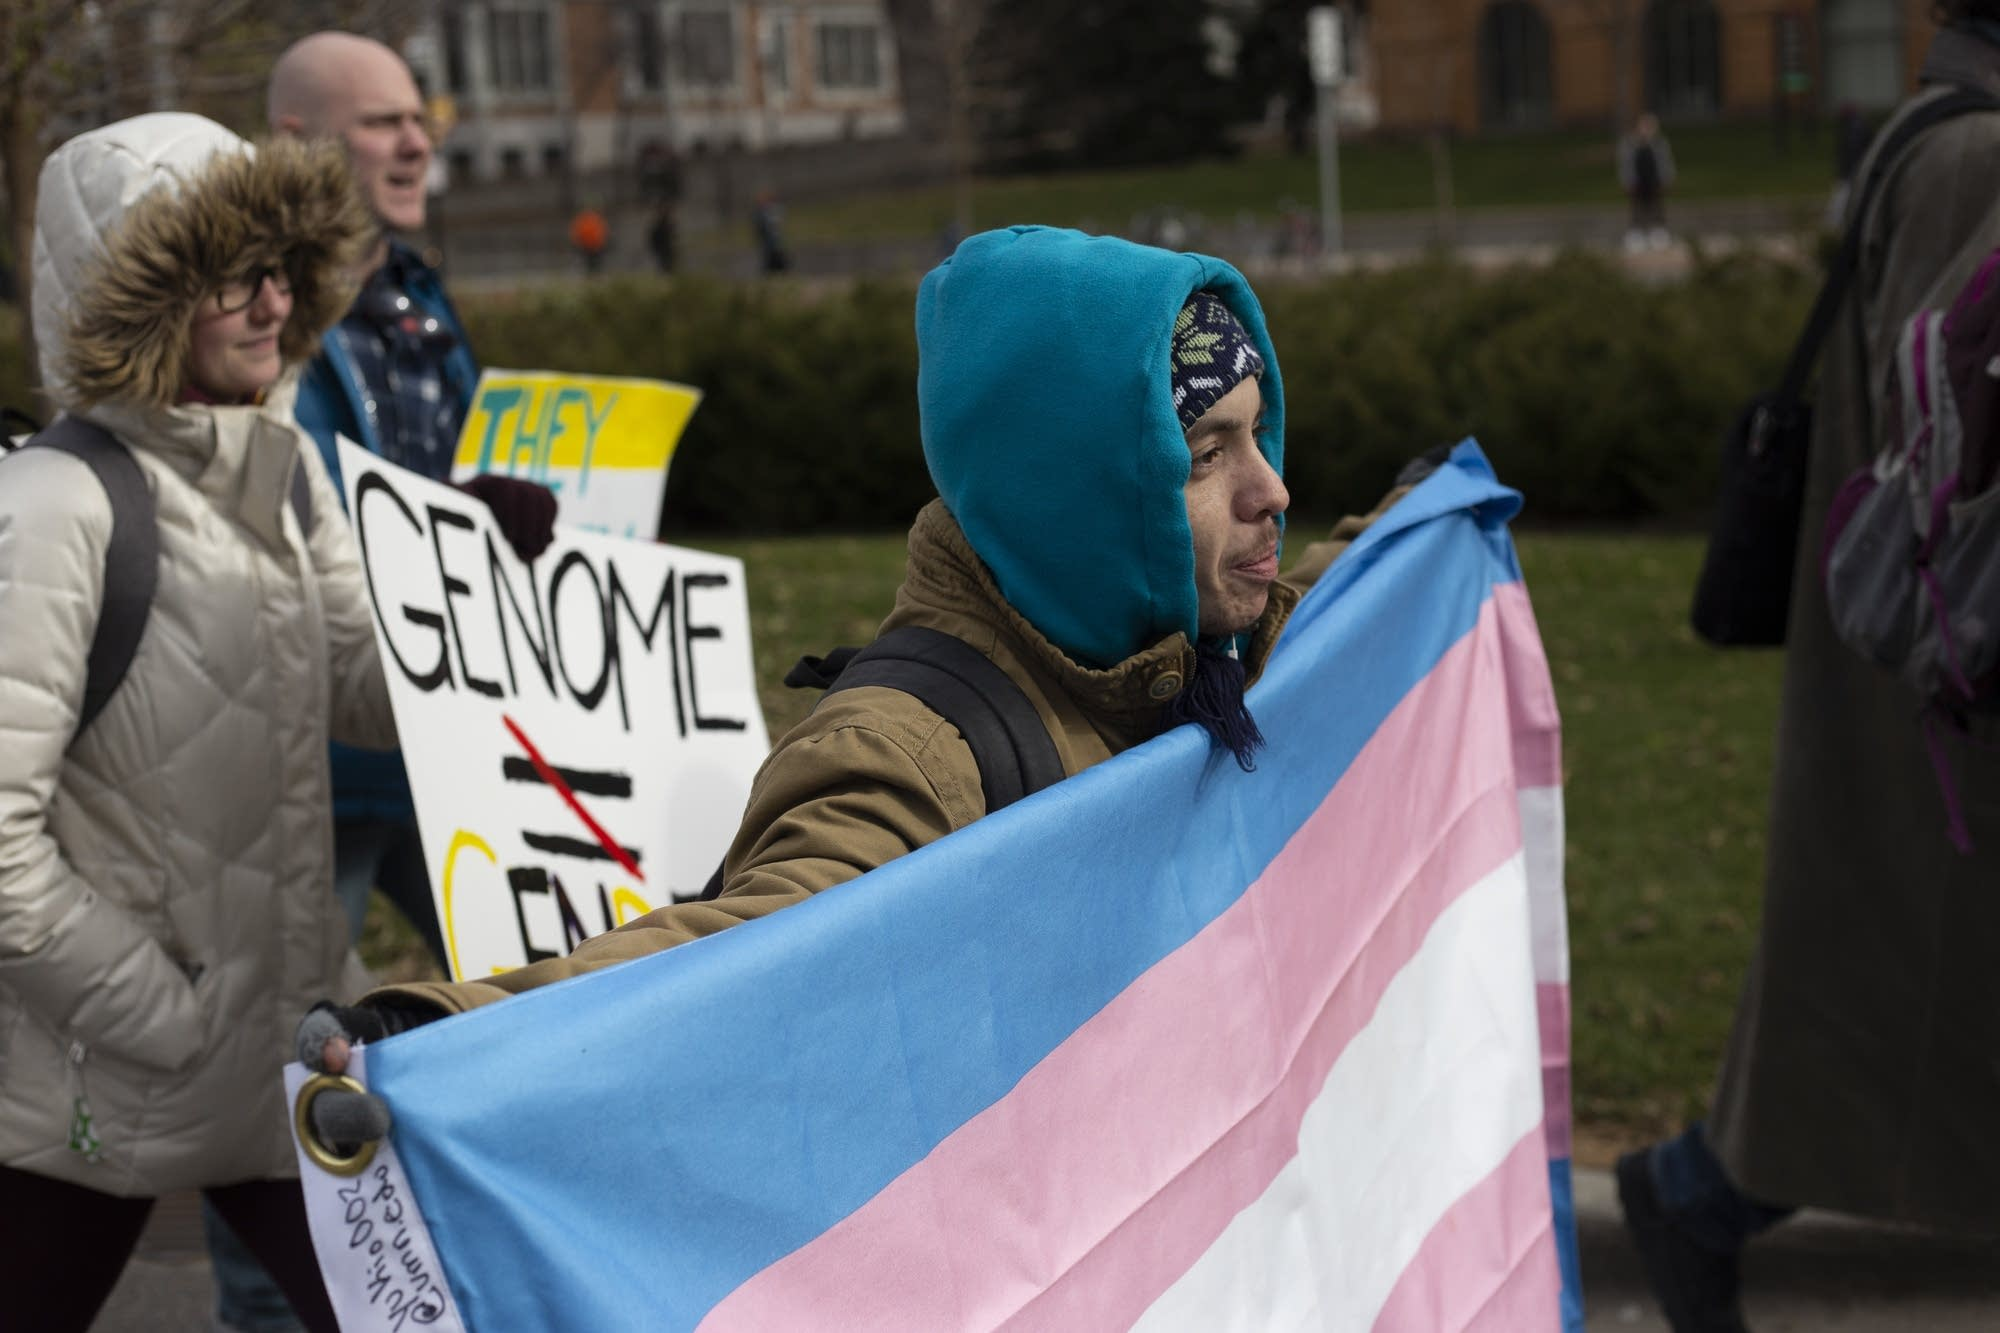 Daniel Pulaski, a transgender man from St. Paul